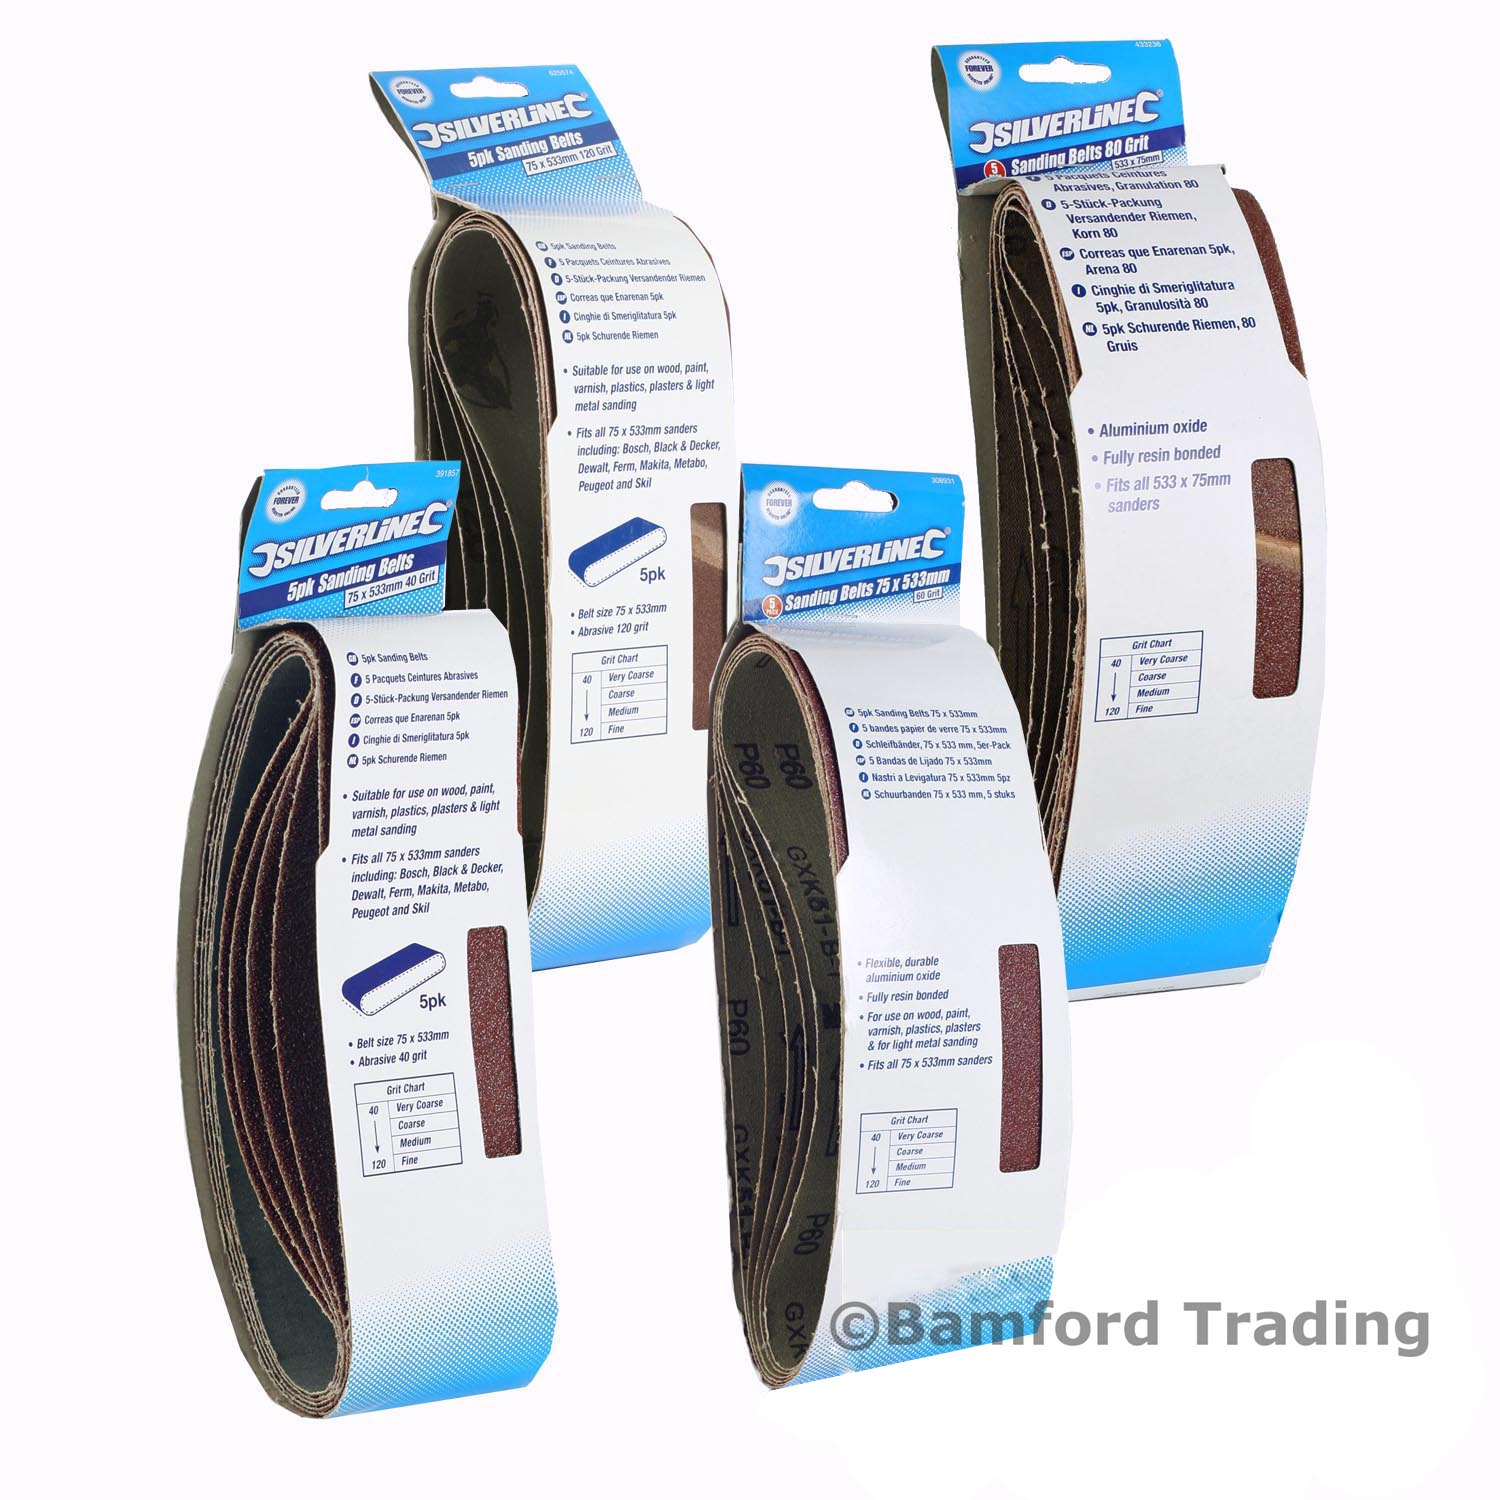 Fully resin bonded. Flexible durable aluminium oxide sanding belts Power Tool Accessories Sanding Belts Sanding Belts 40mm x 305mm 5pk 80 Grit Fits all 40mm x 305mm sanders including Bosch